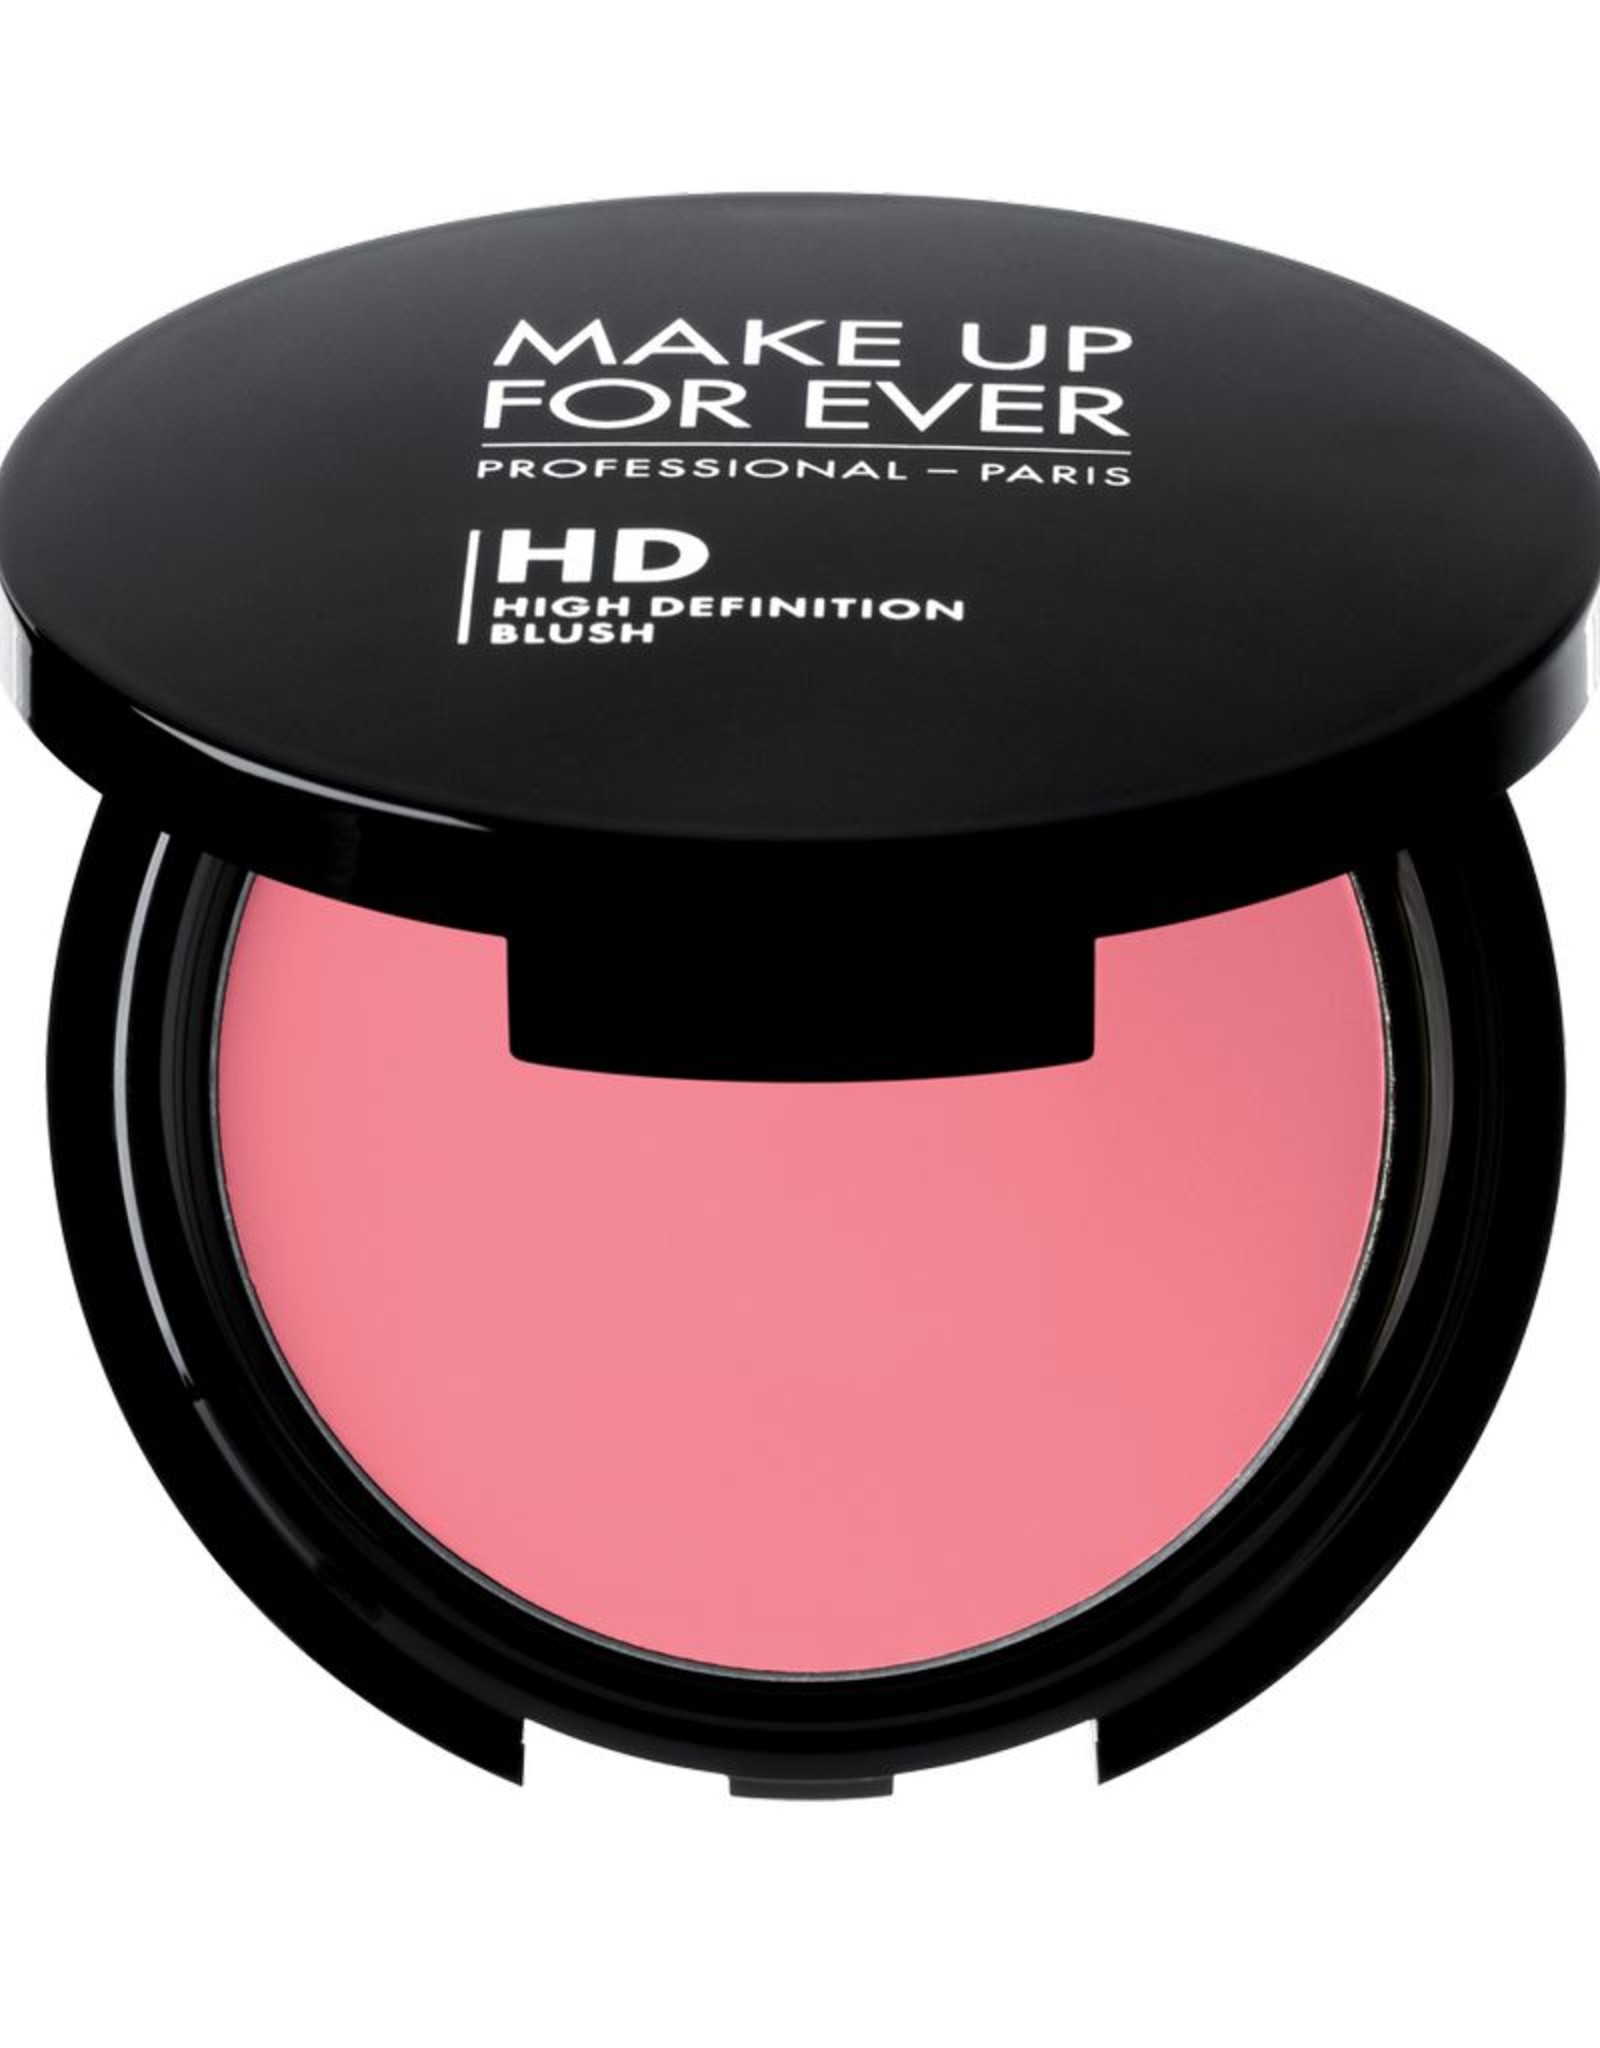 MUFE HD BLUSH CREME 2.8G #210: Cool Pink